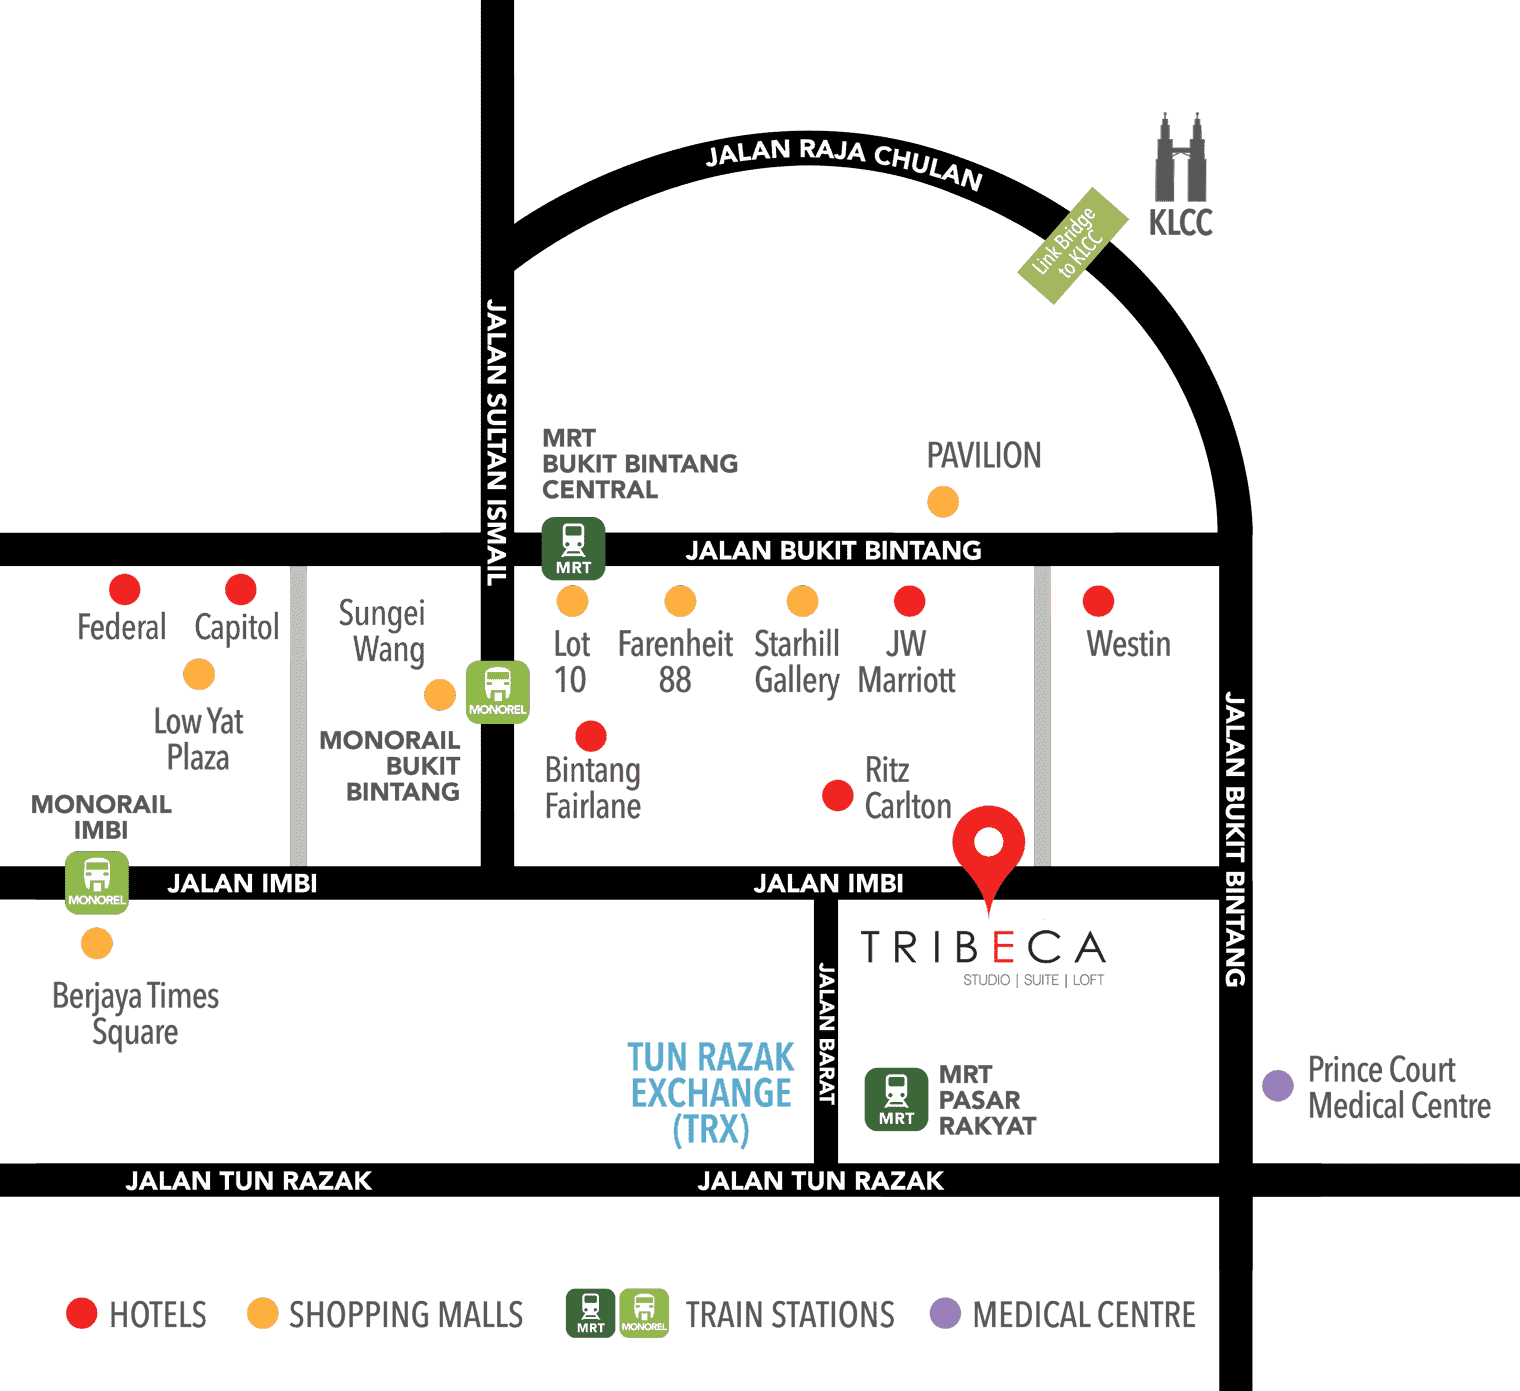 TRIBECA location map